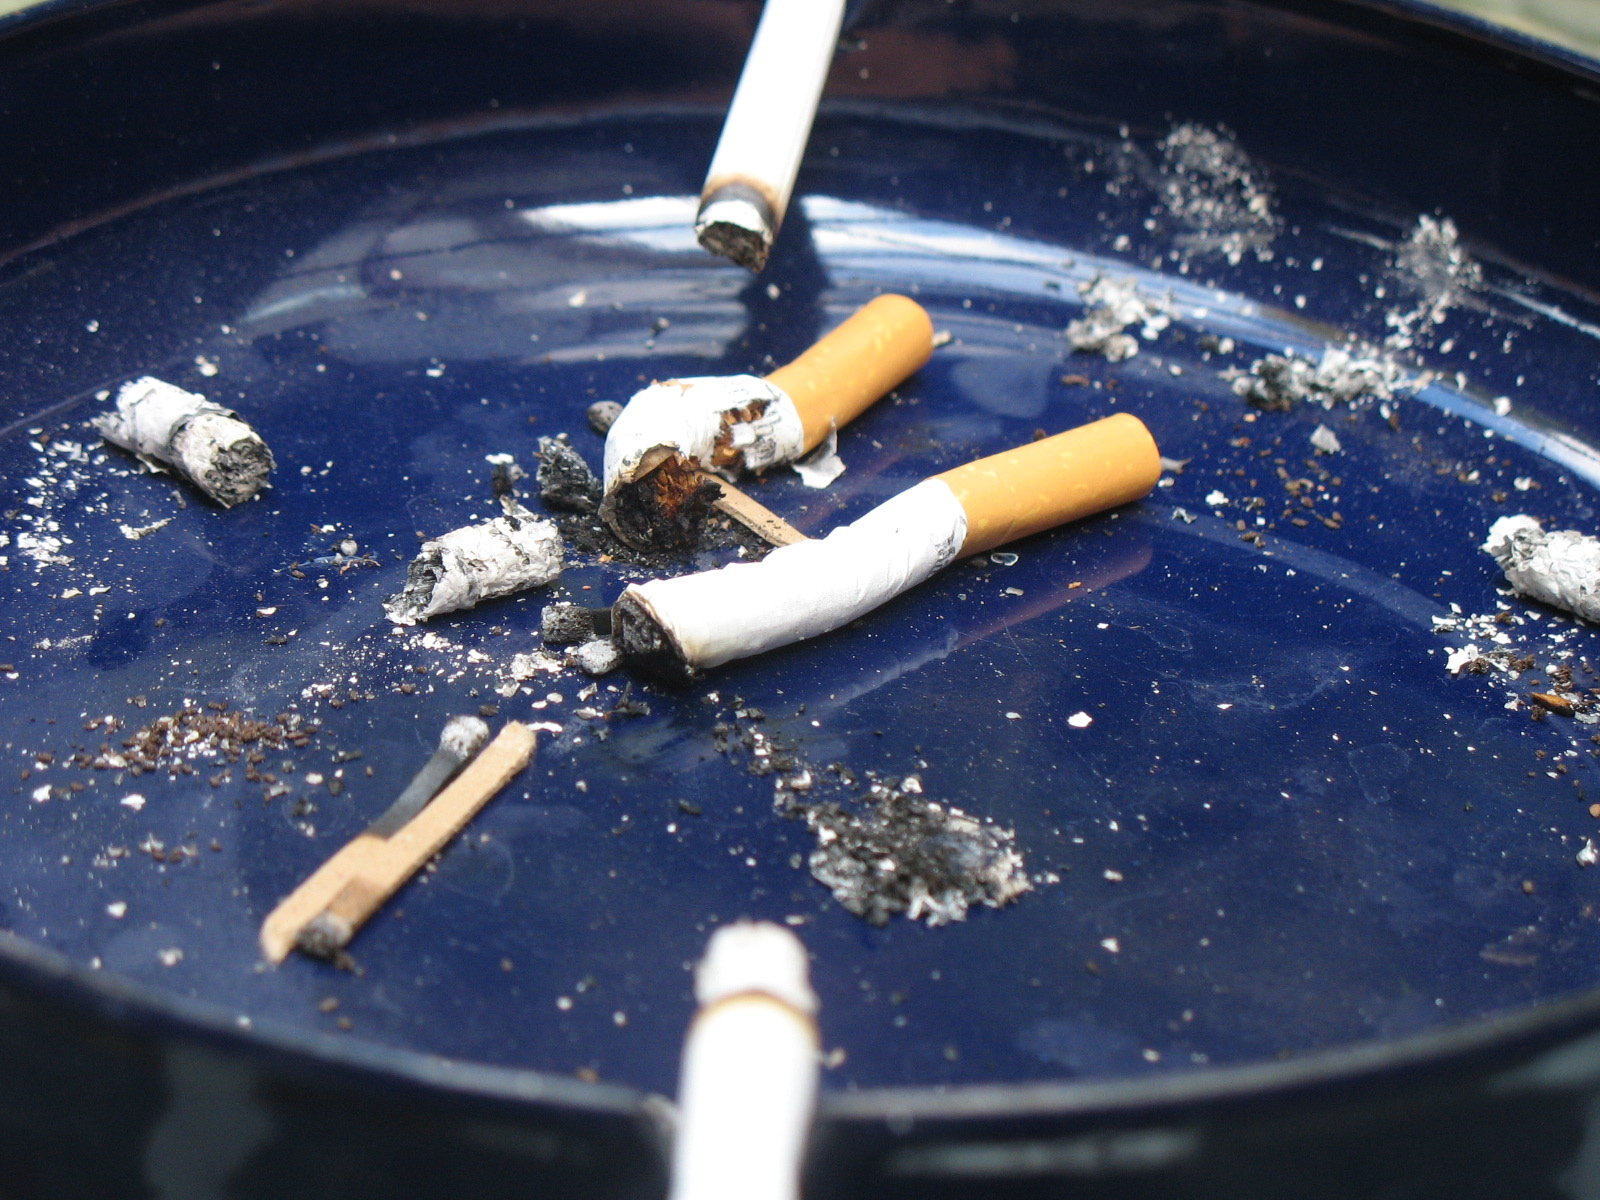 Smokers more likely to develop Schizophrenia: Study